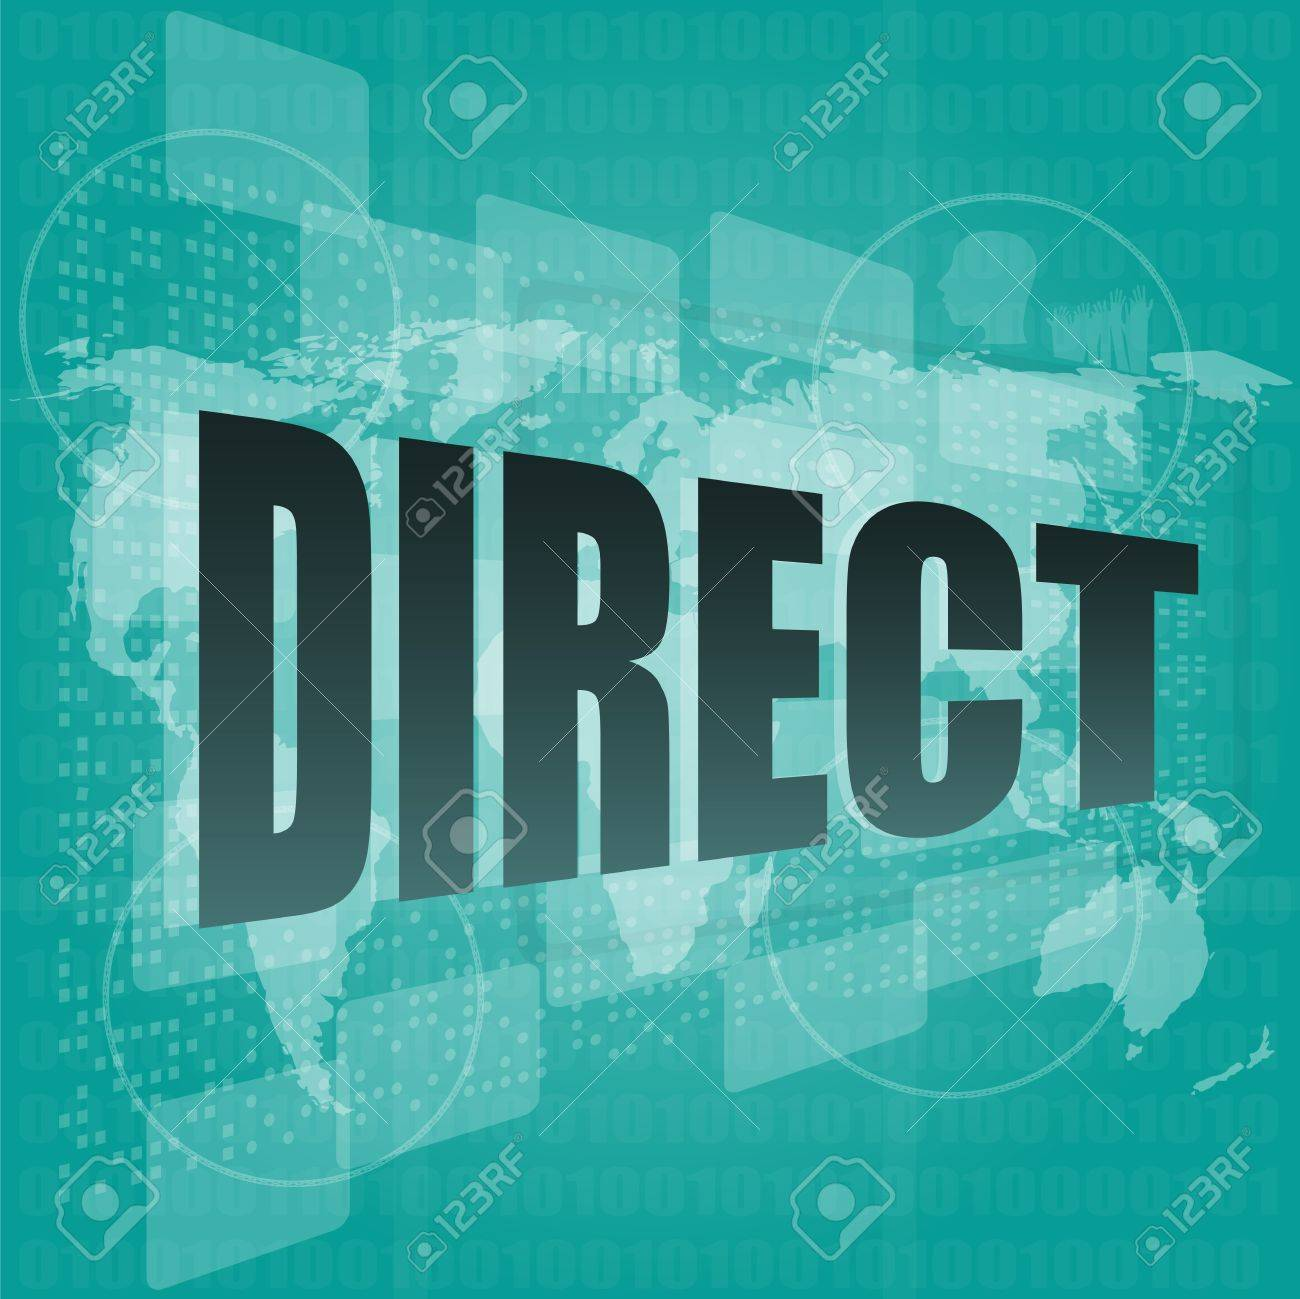 business concept: word direct on digital background Stock Photo - 17782265